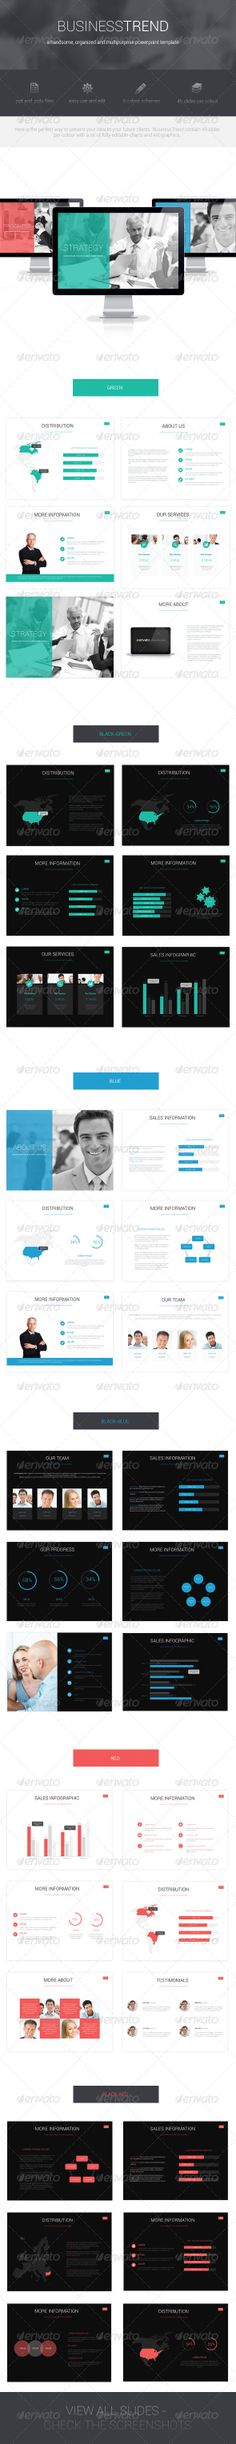 Business Trend Powerpoint Template